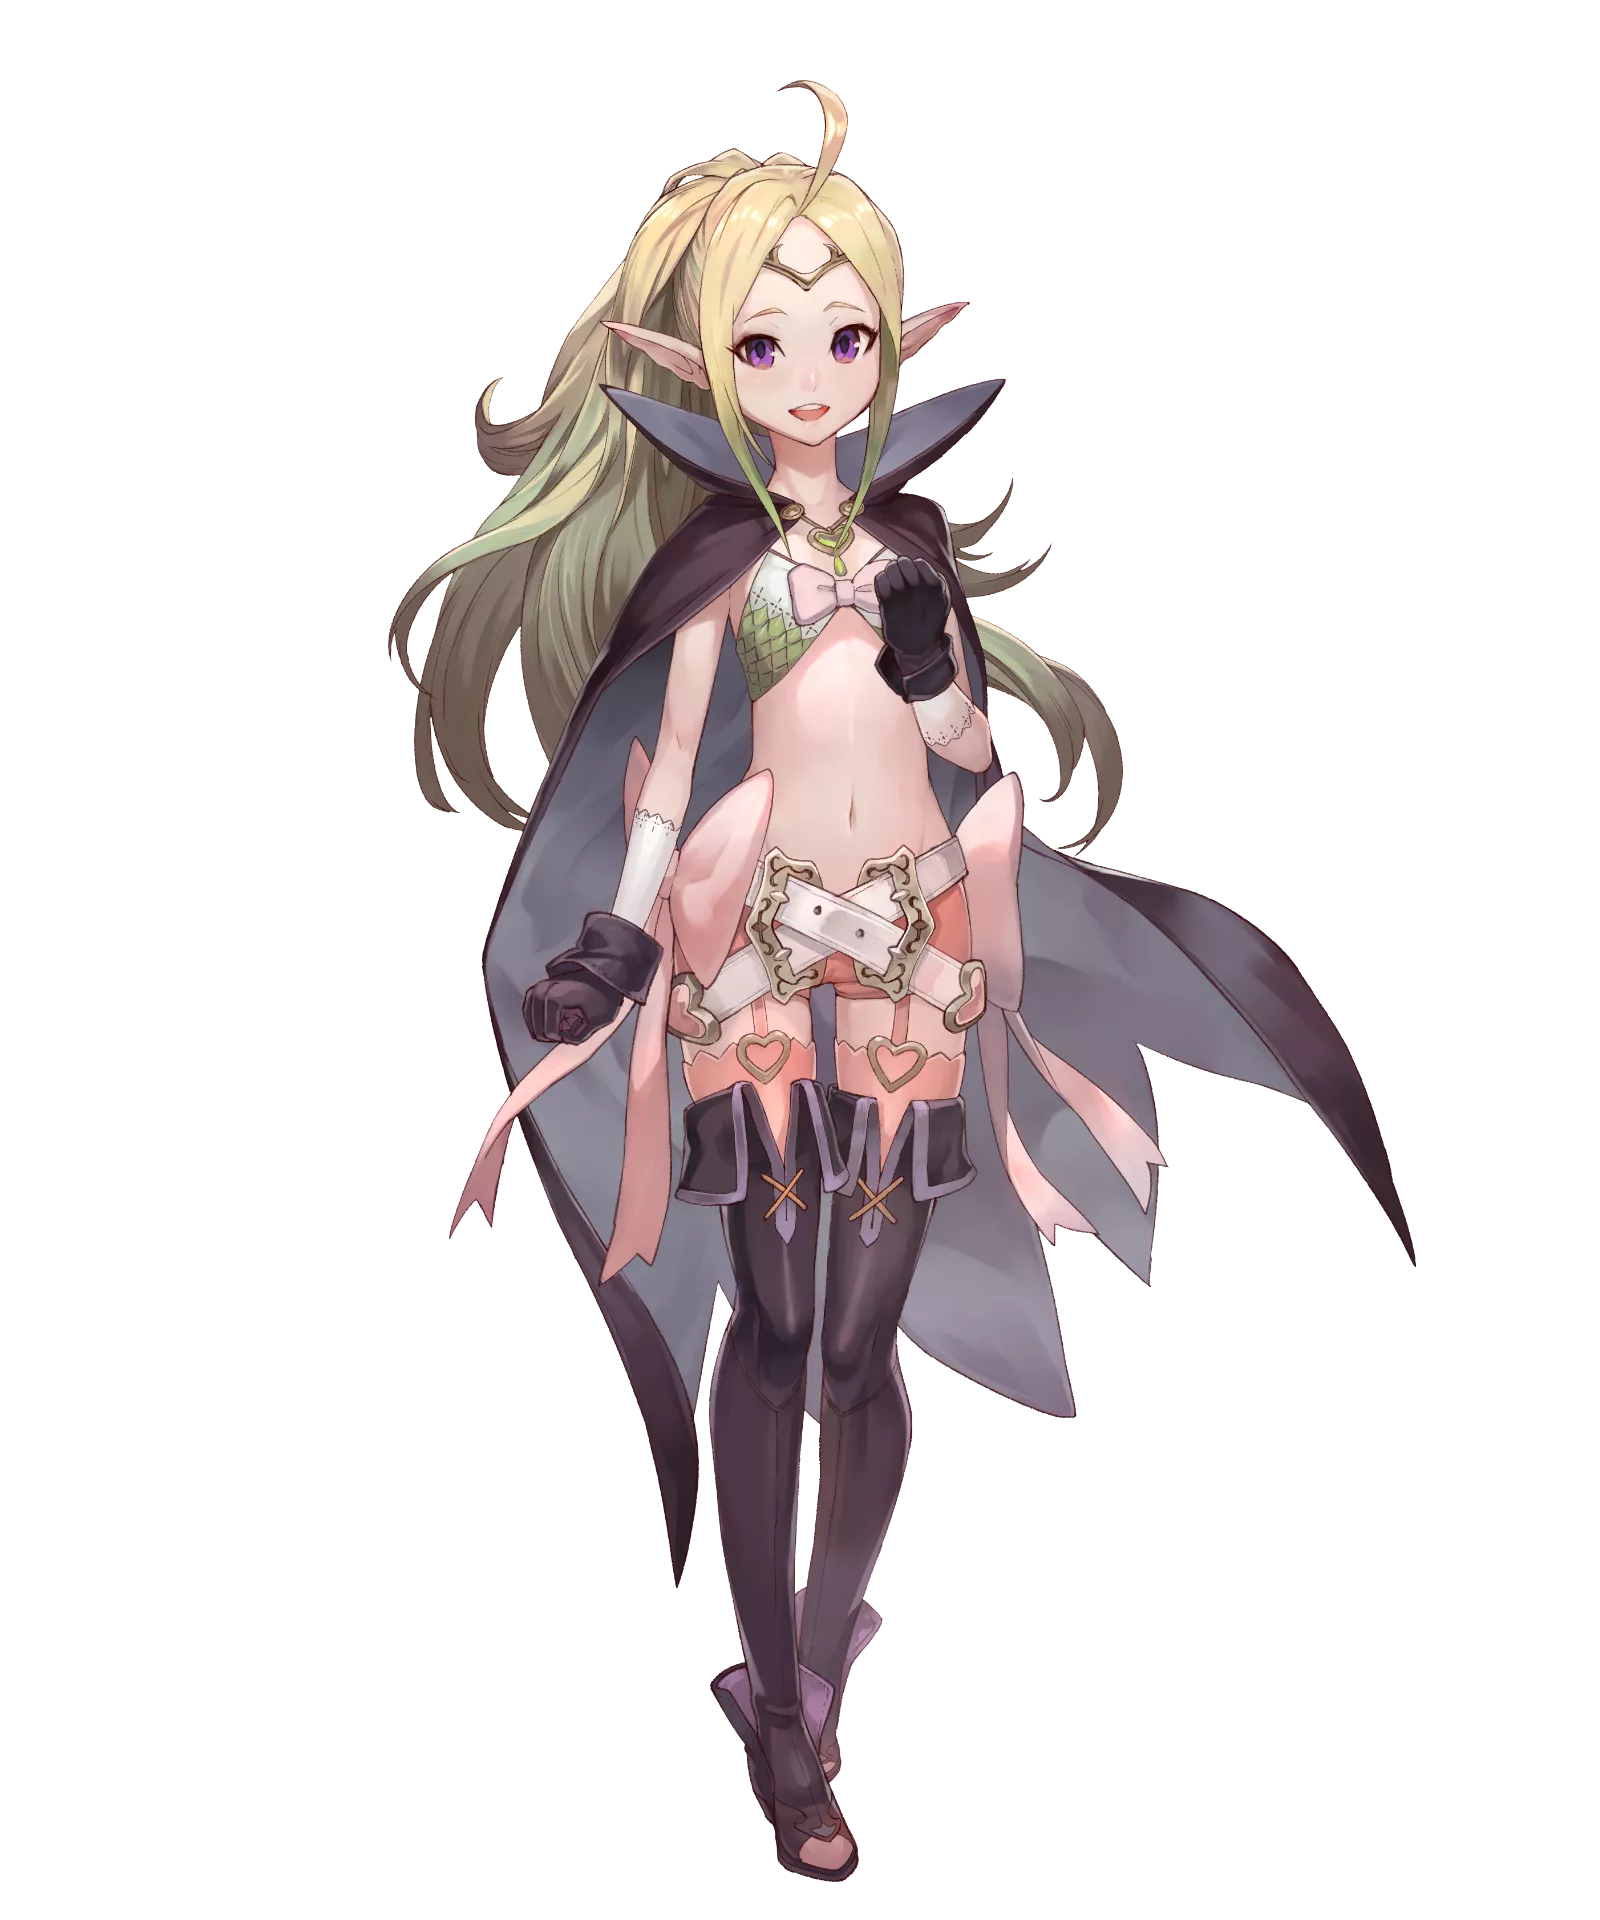 Nowi | Fire Emblem Heroes Wiki - GamePress